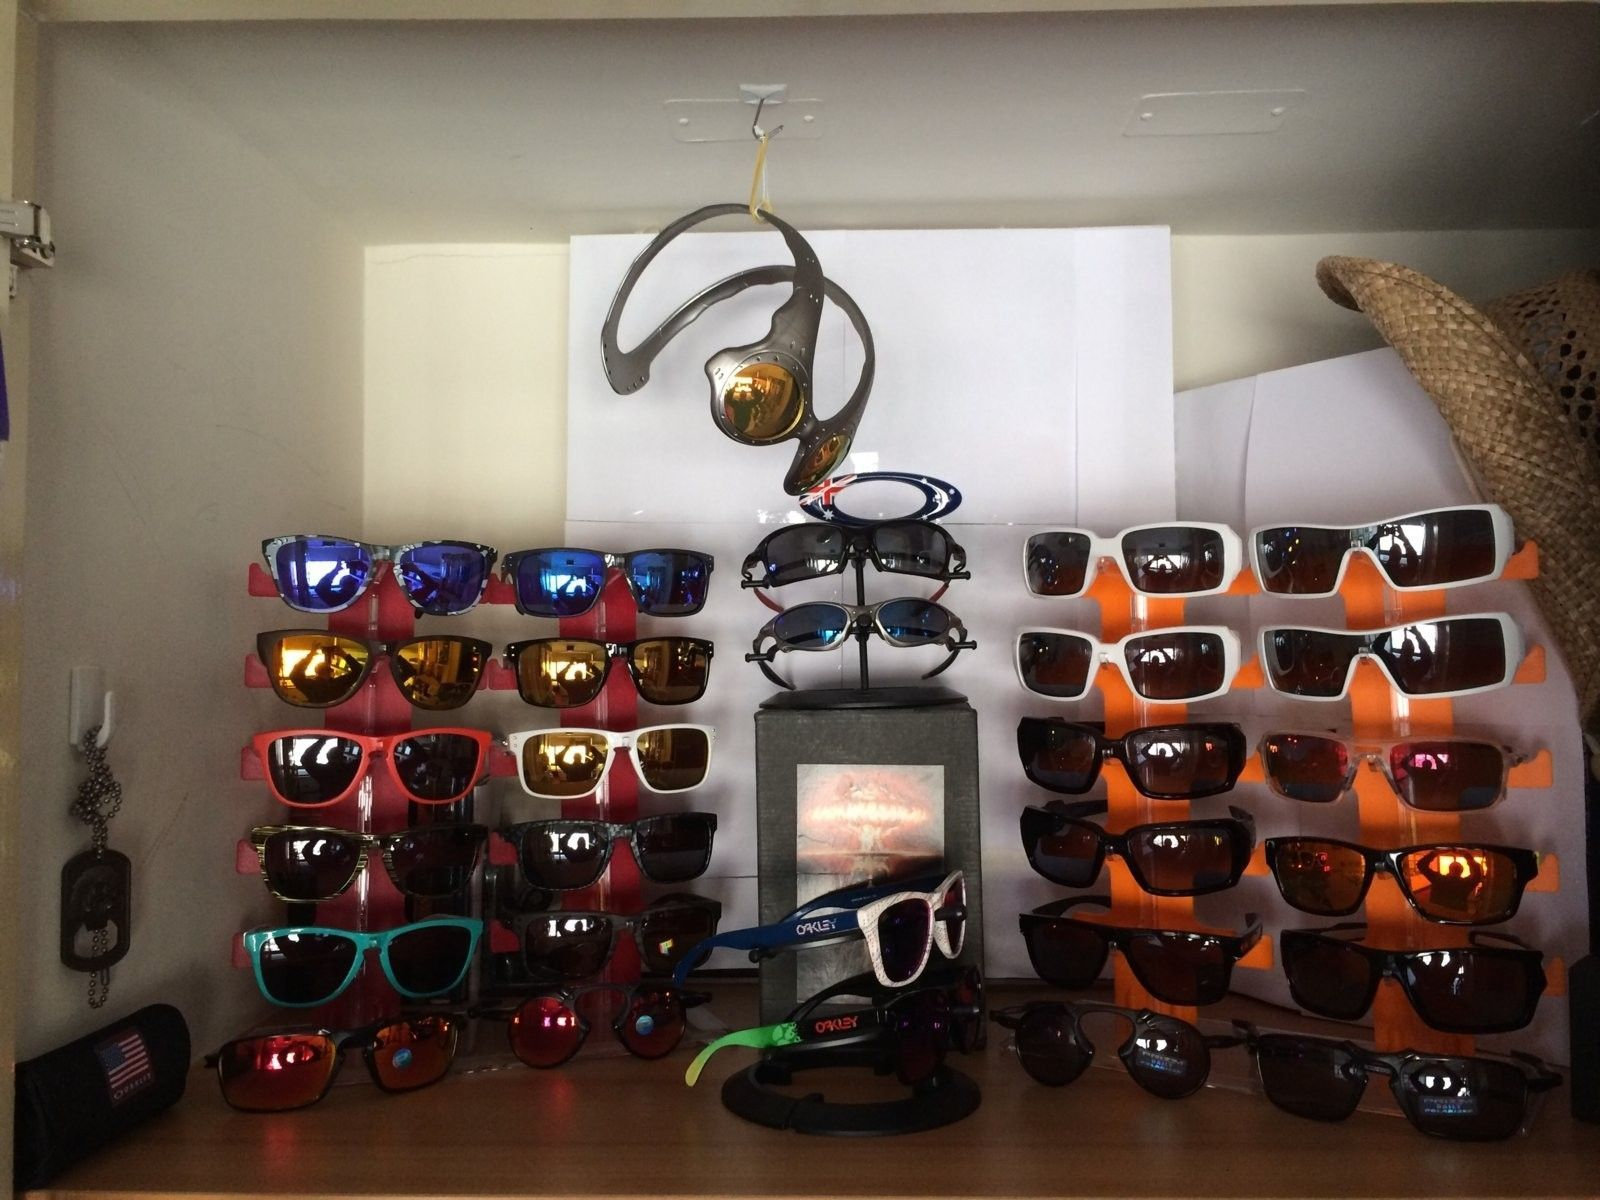 Karimo's collection update - image.jpg